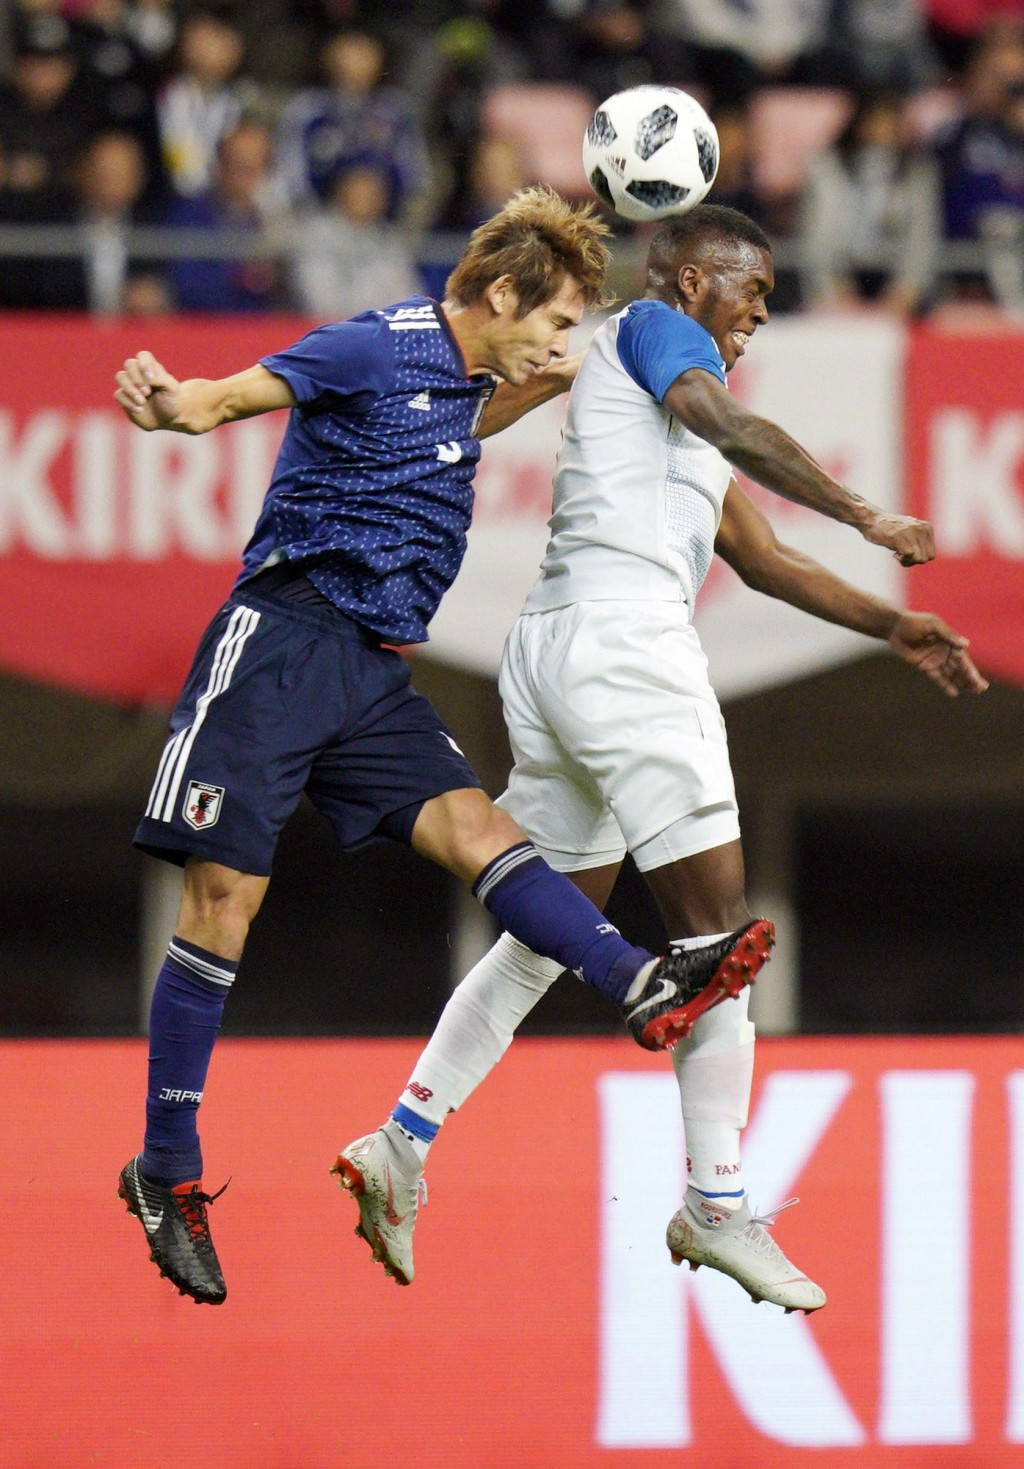 Japan's Sho Sasaki, left, vies for the ball during their Kirin Challenge Cup soccer match against Panama in Niigata, Niigata prefecture, north of Toky